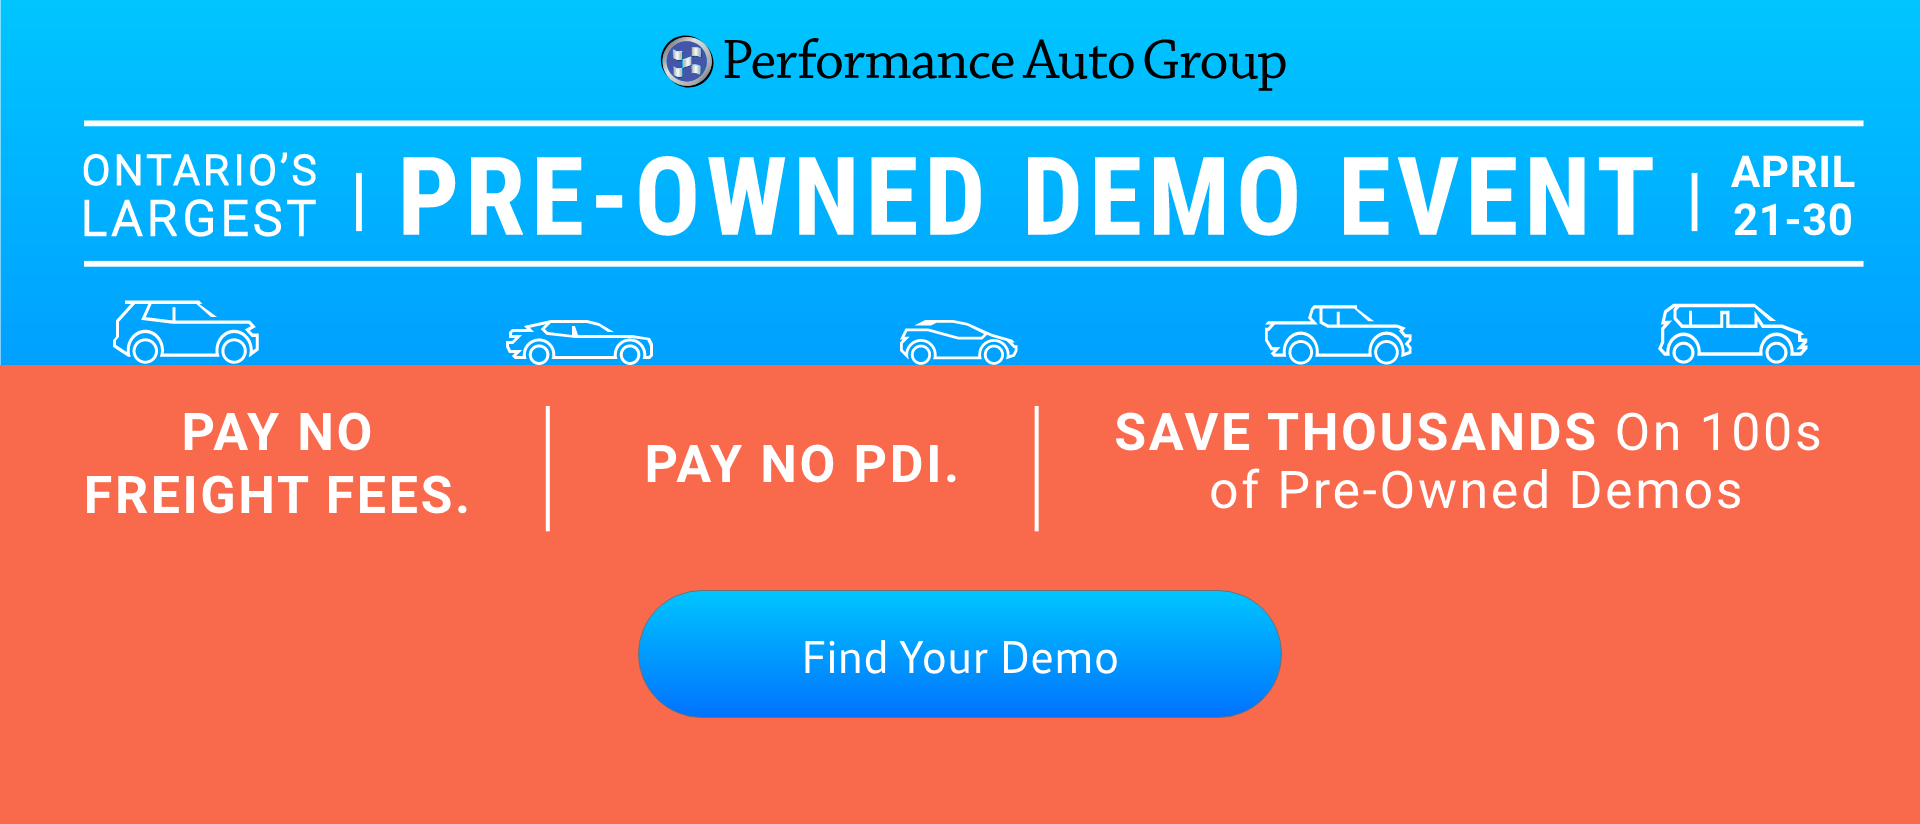 Pre-Owned Demonstrator Vehicles